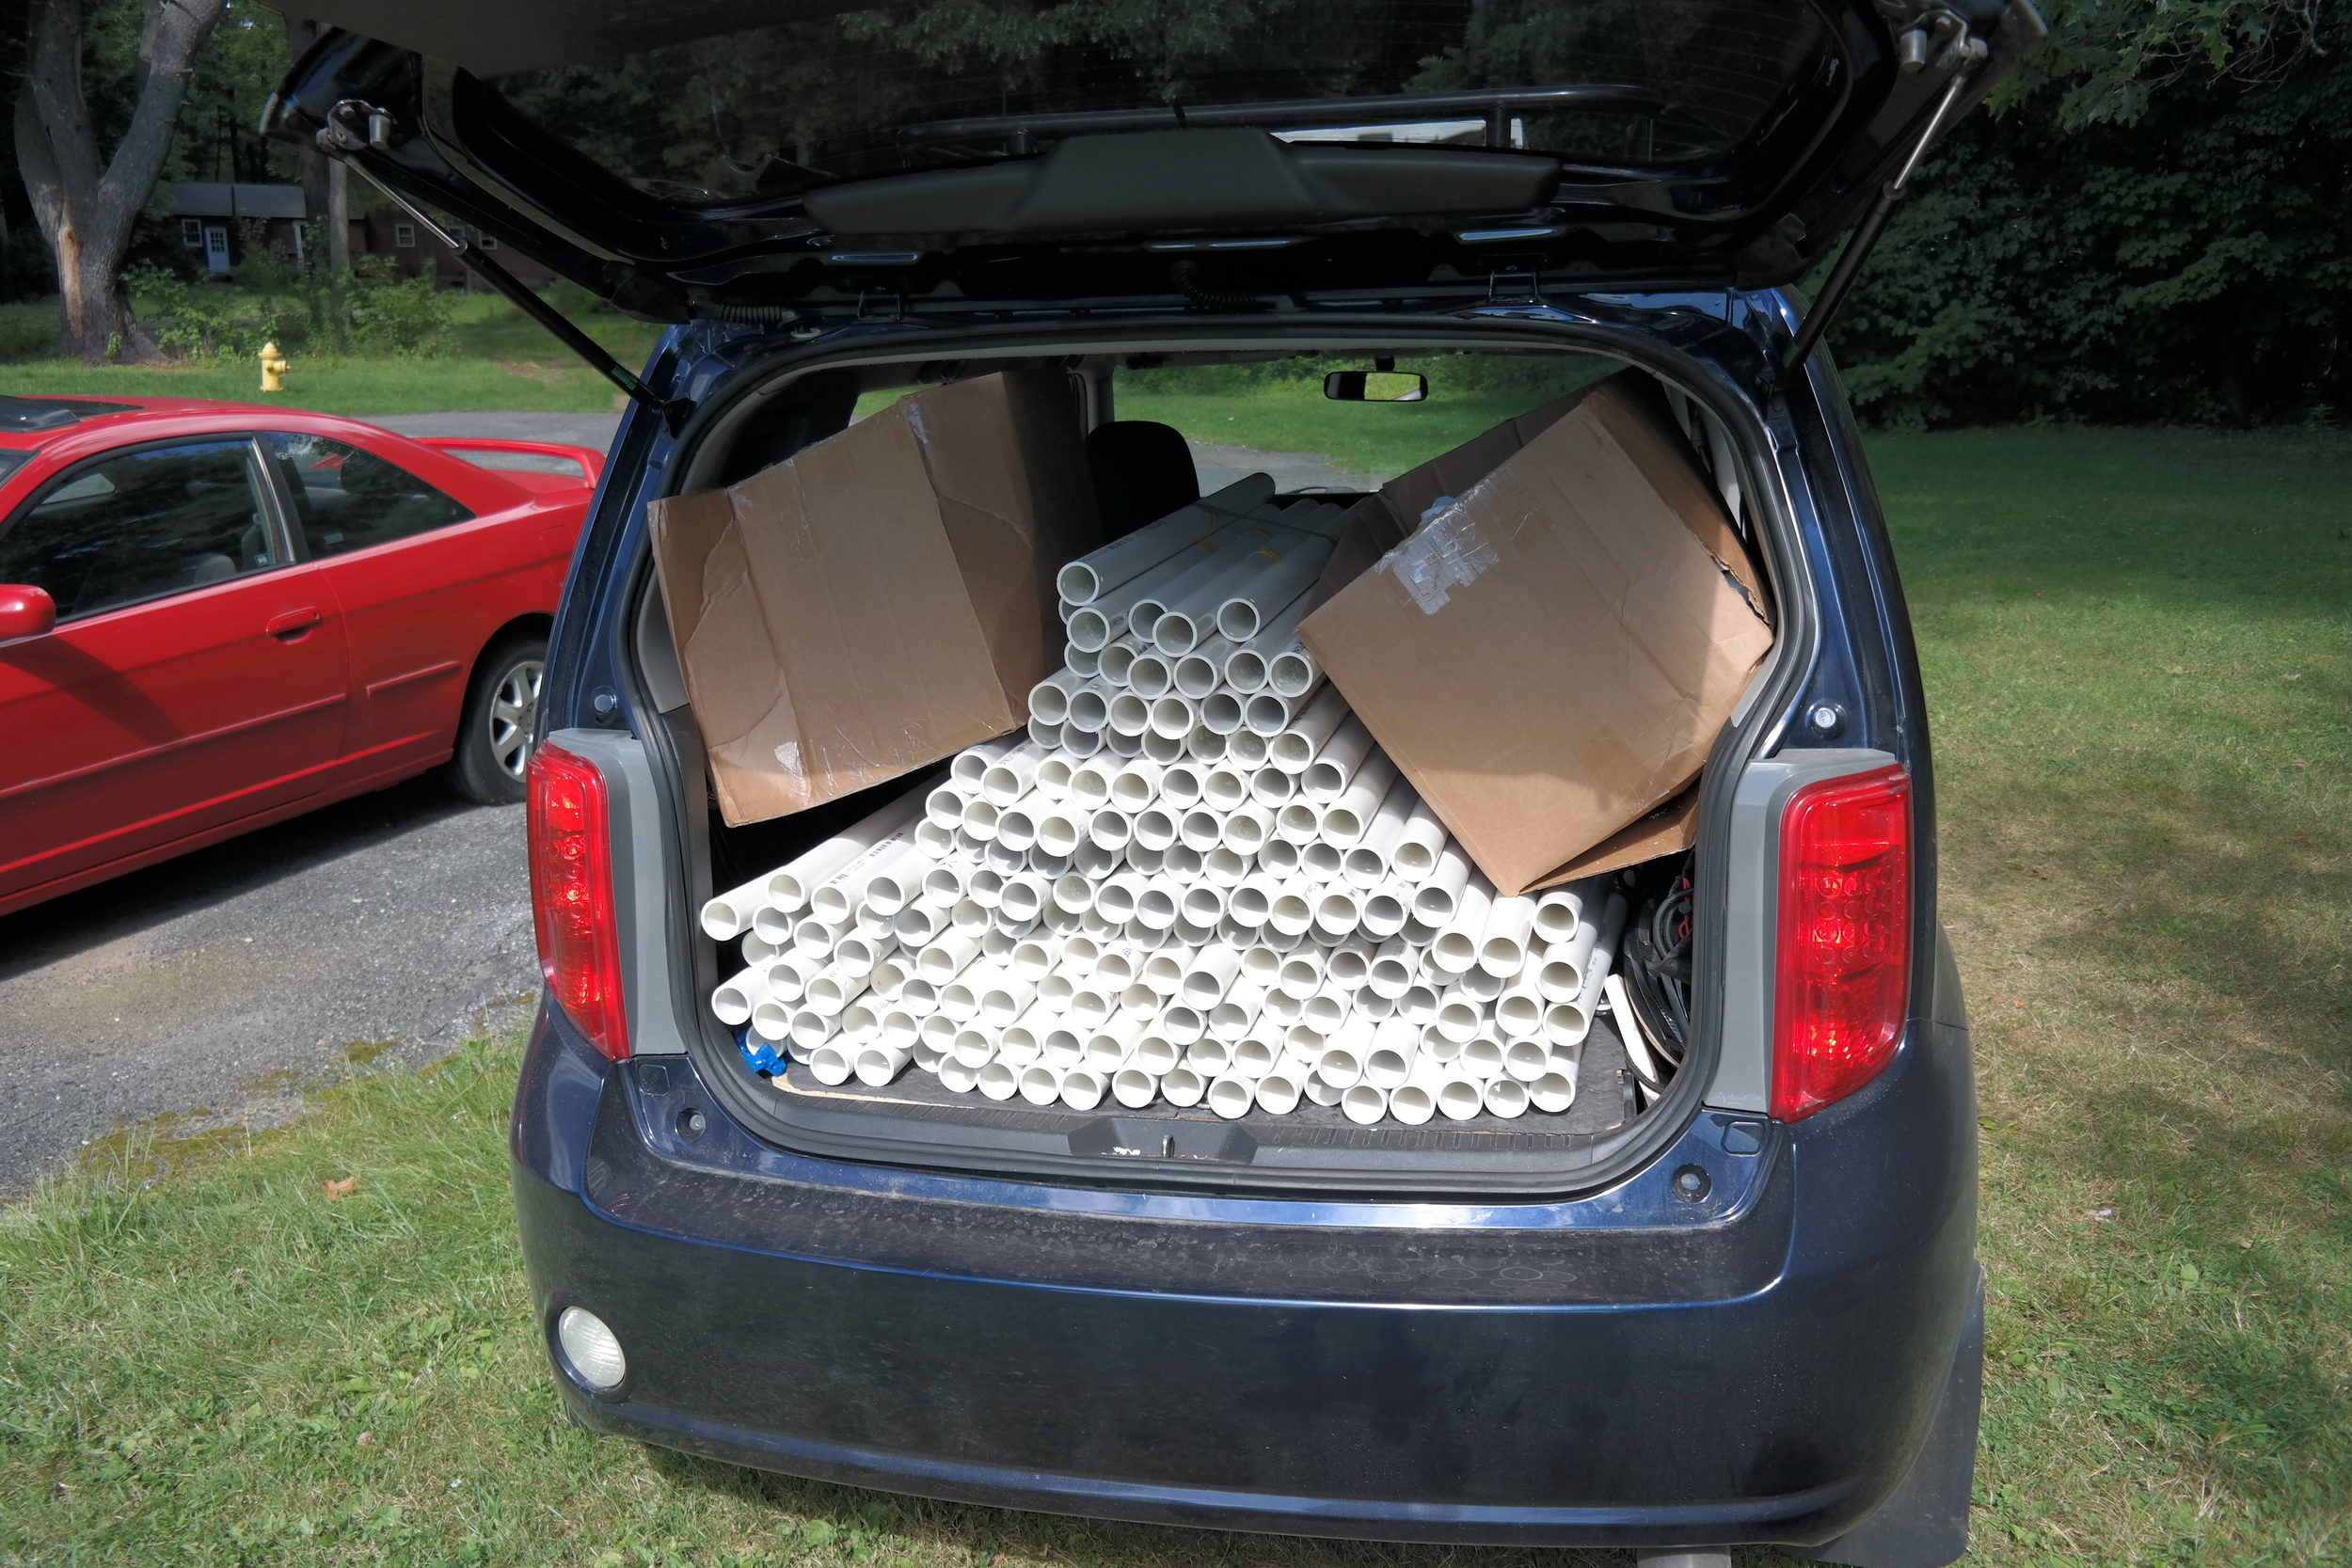 Here are all 76 pipes cut, and stored in my wagon.